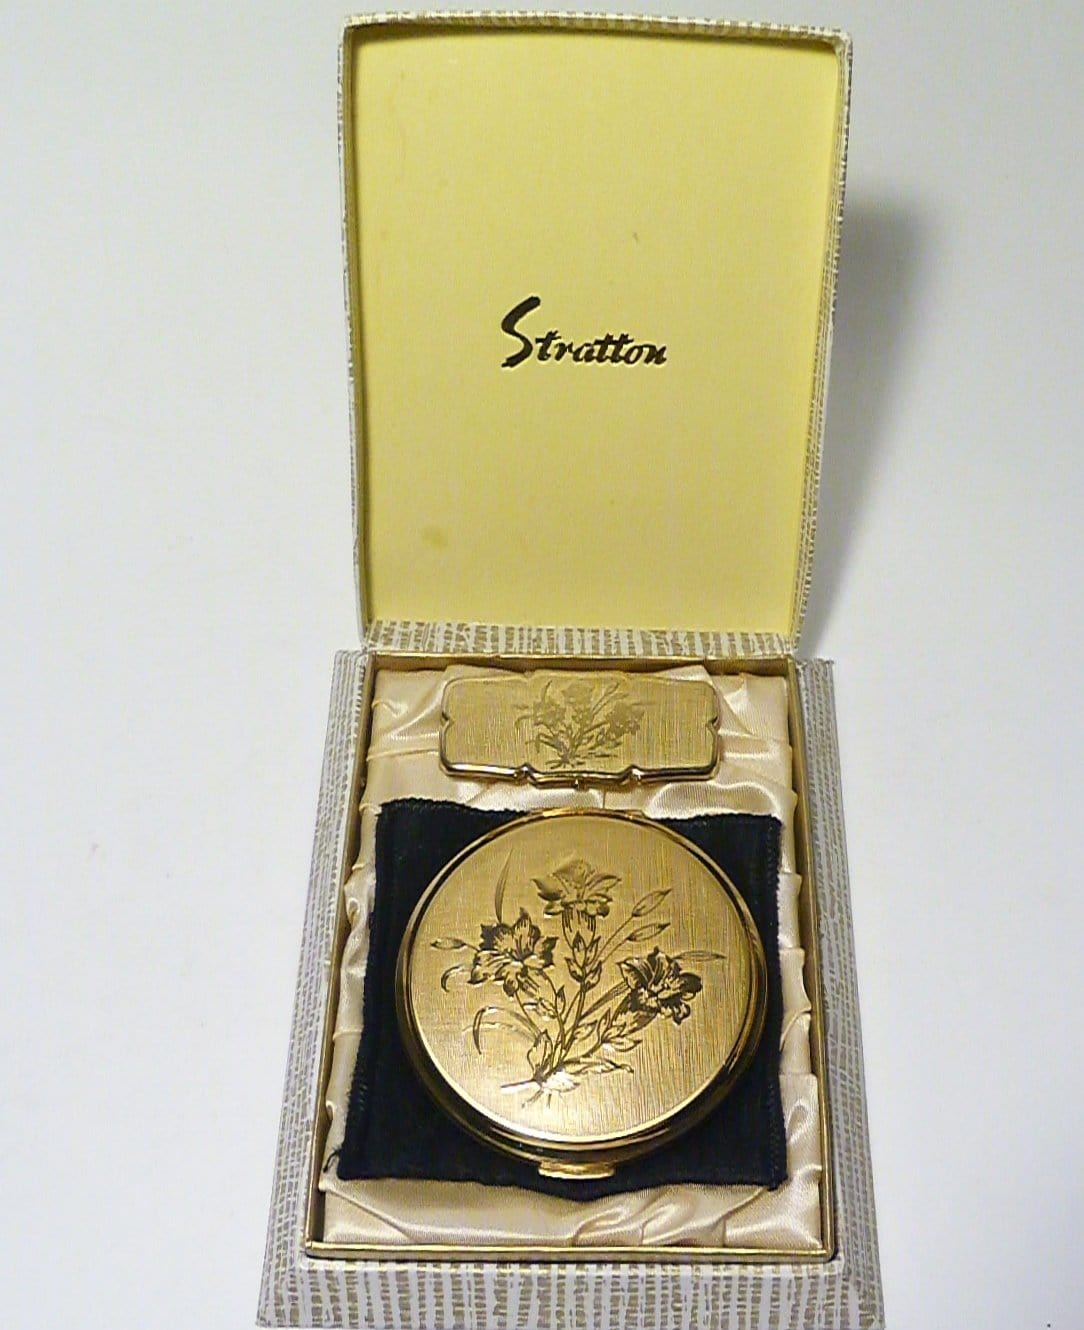 unused vintage stratton compacts